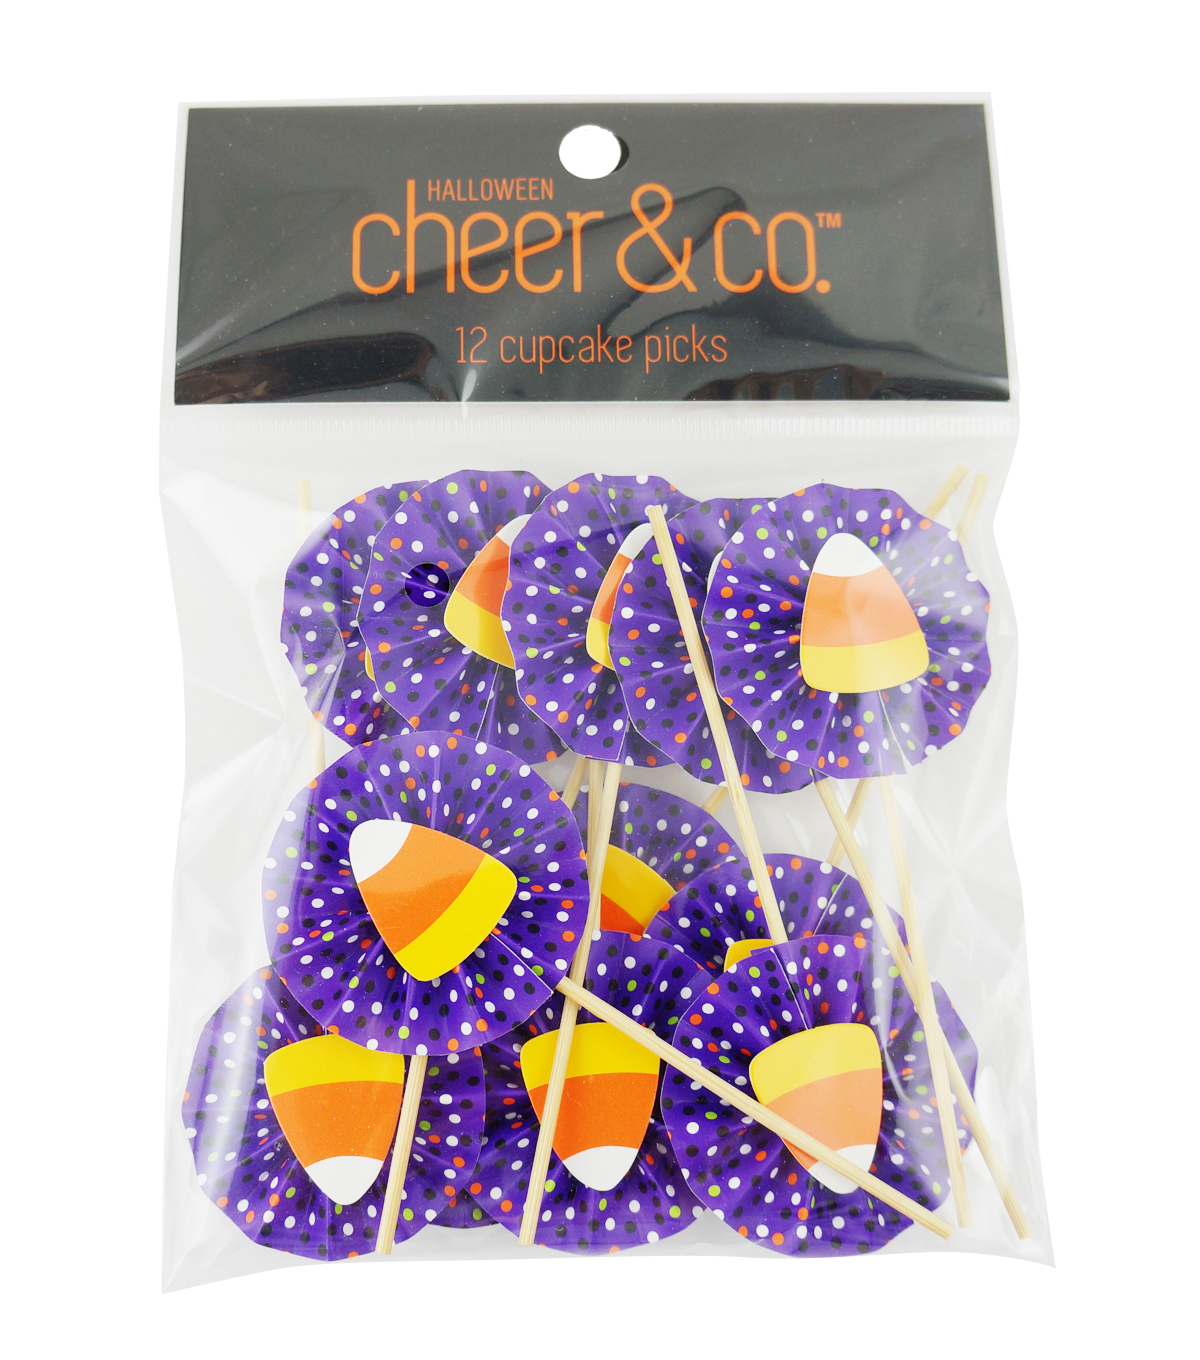 Cheer & Co. Halloween 12 pk Cupcake Picks-Candy Corn